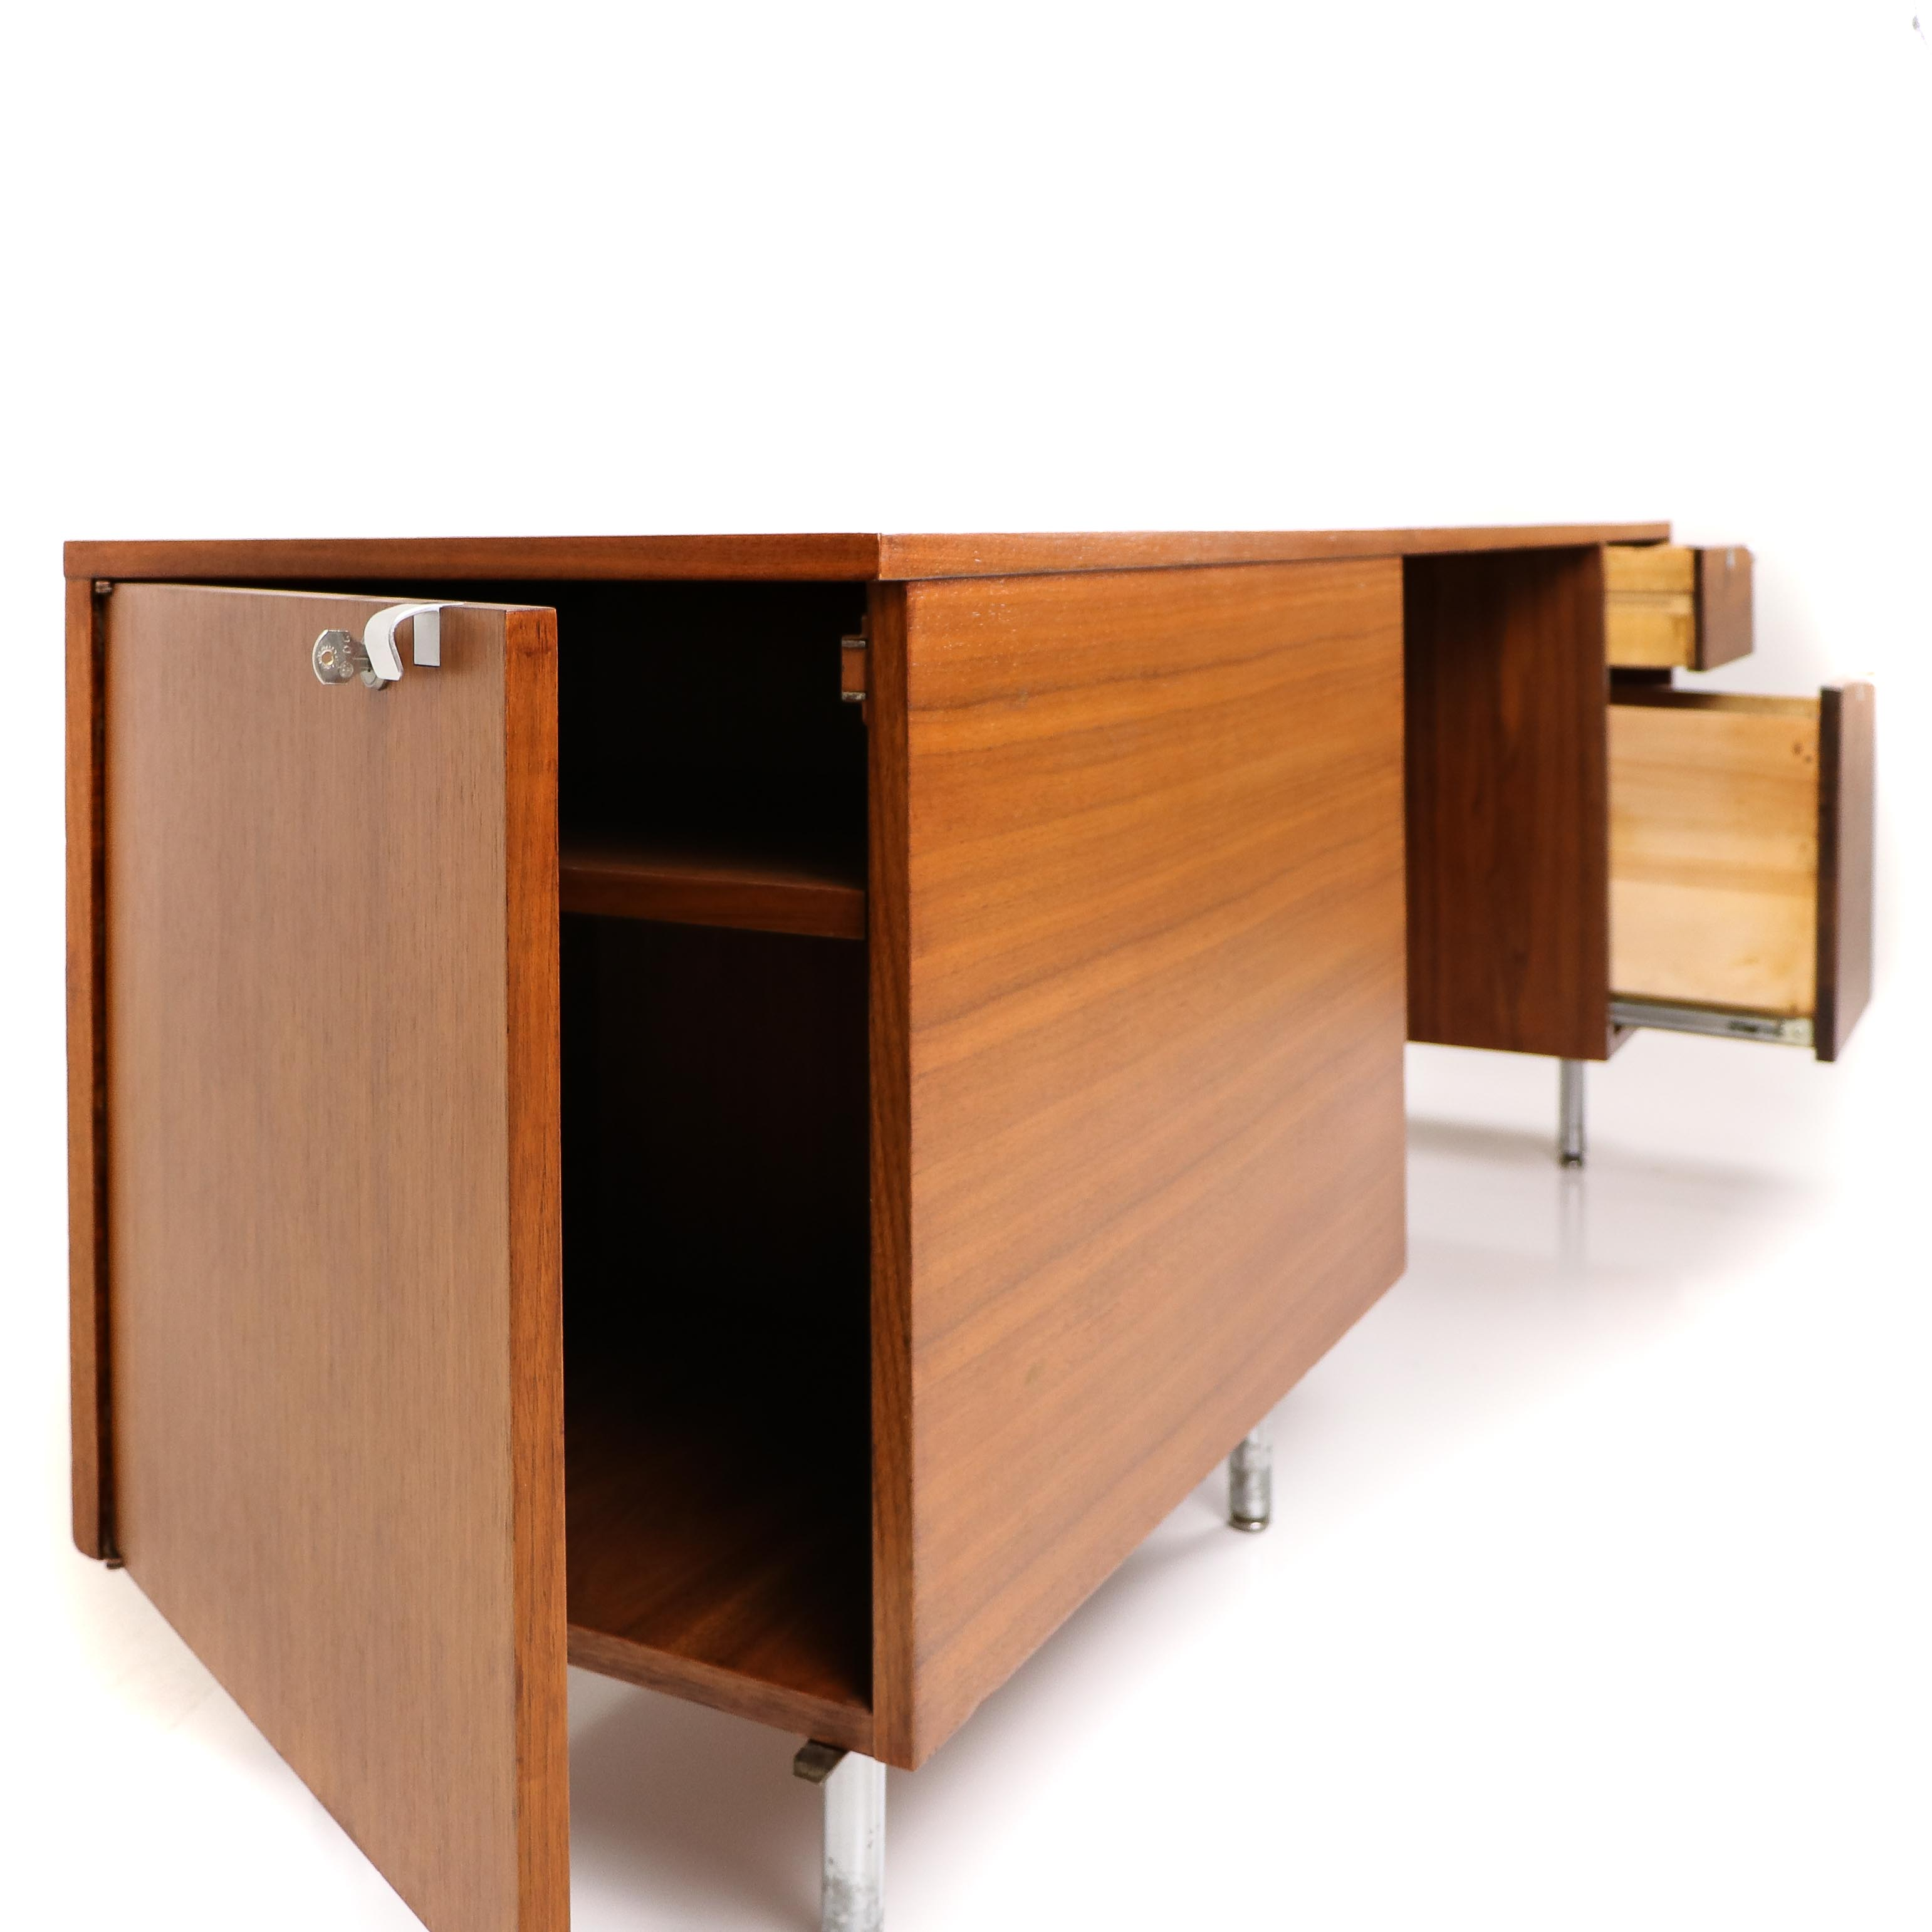 Wooden 1950s Herman Miller Eames EDU - Eames  Desk Unit